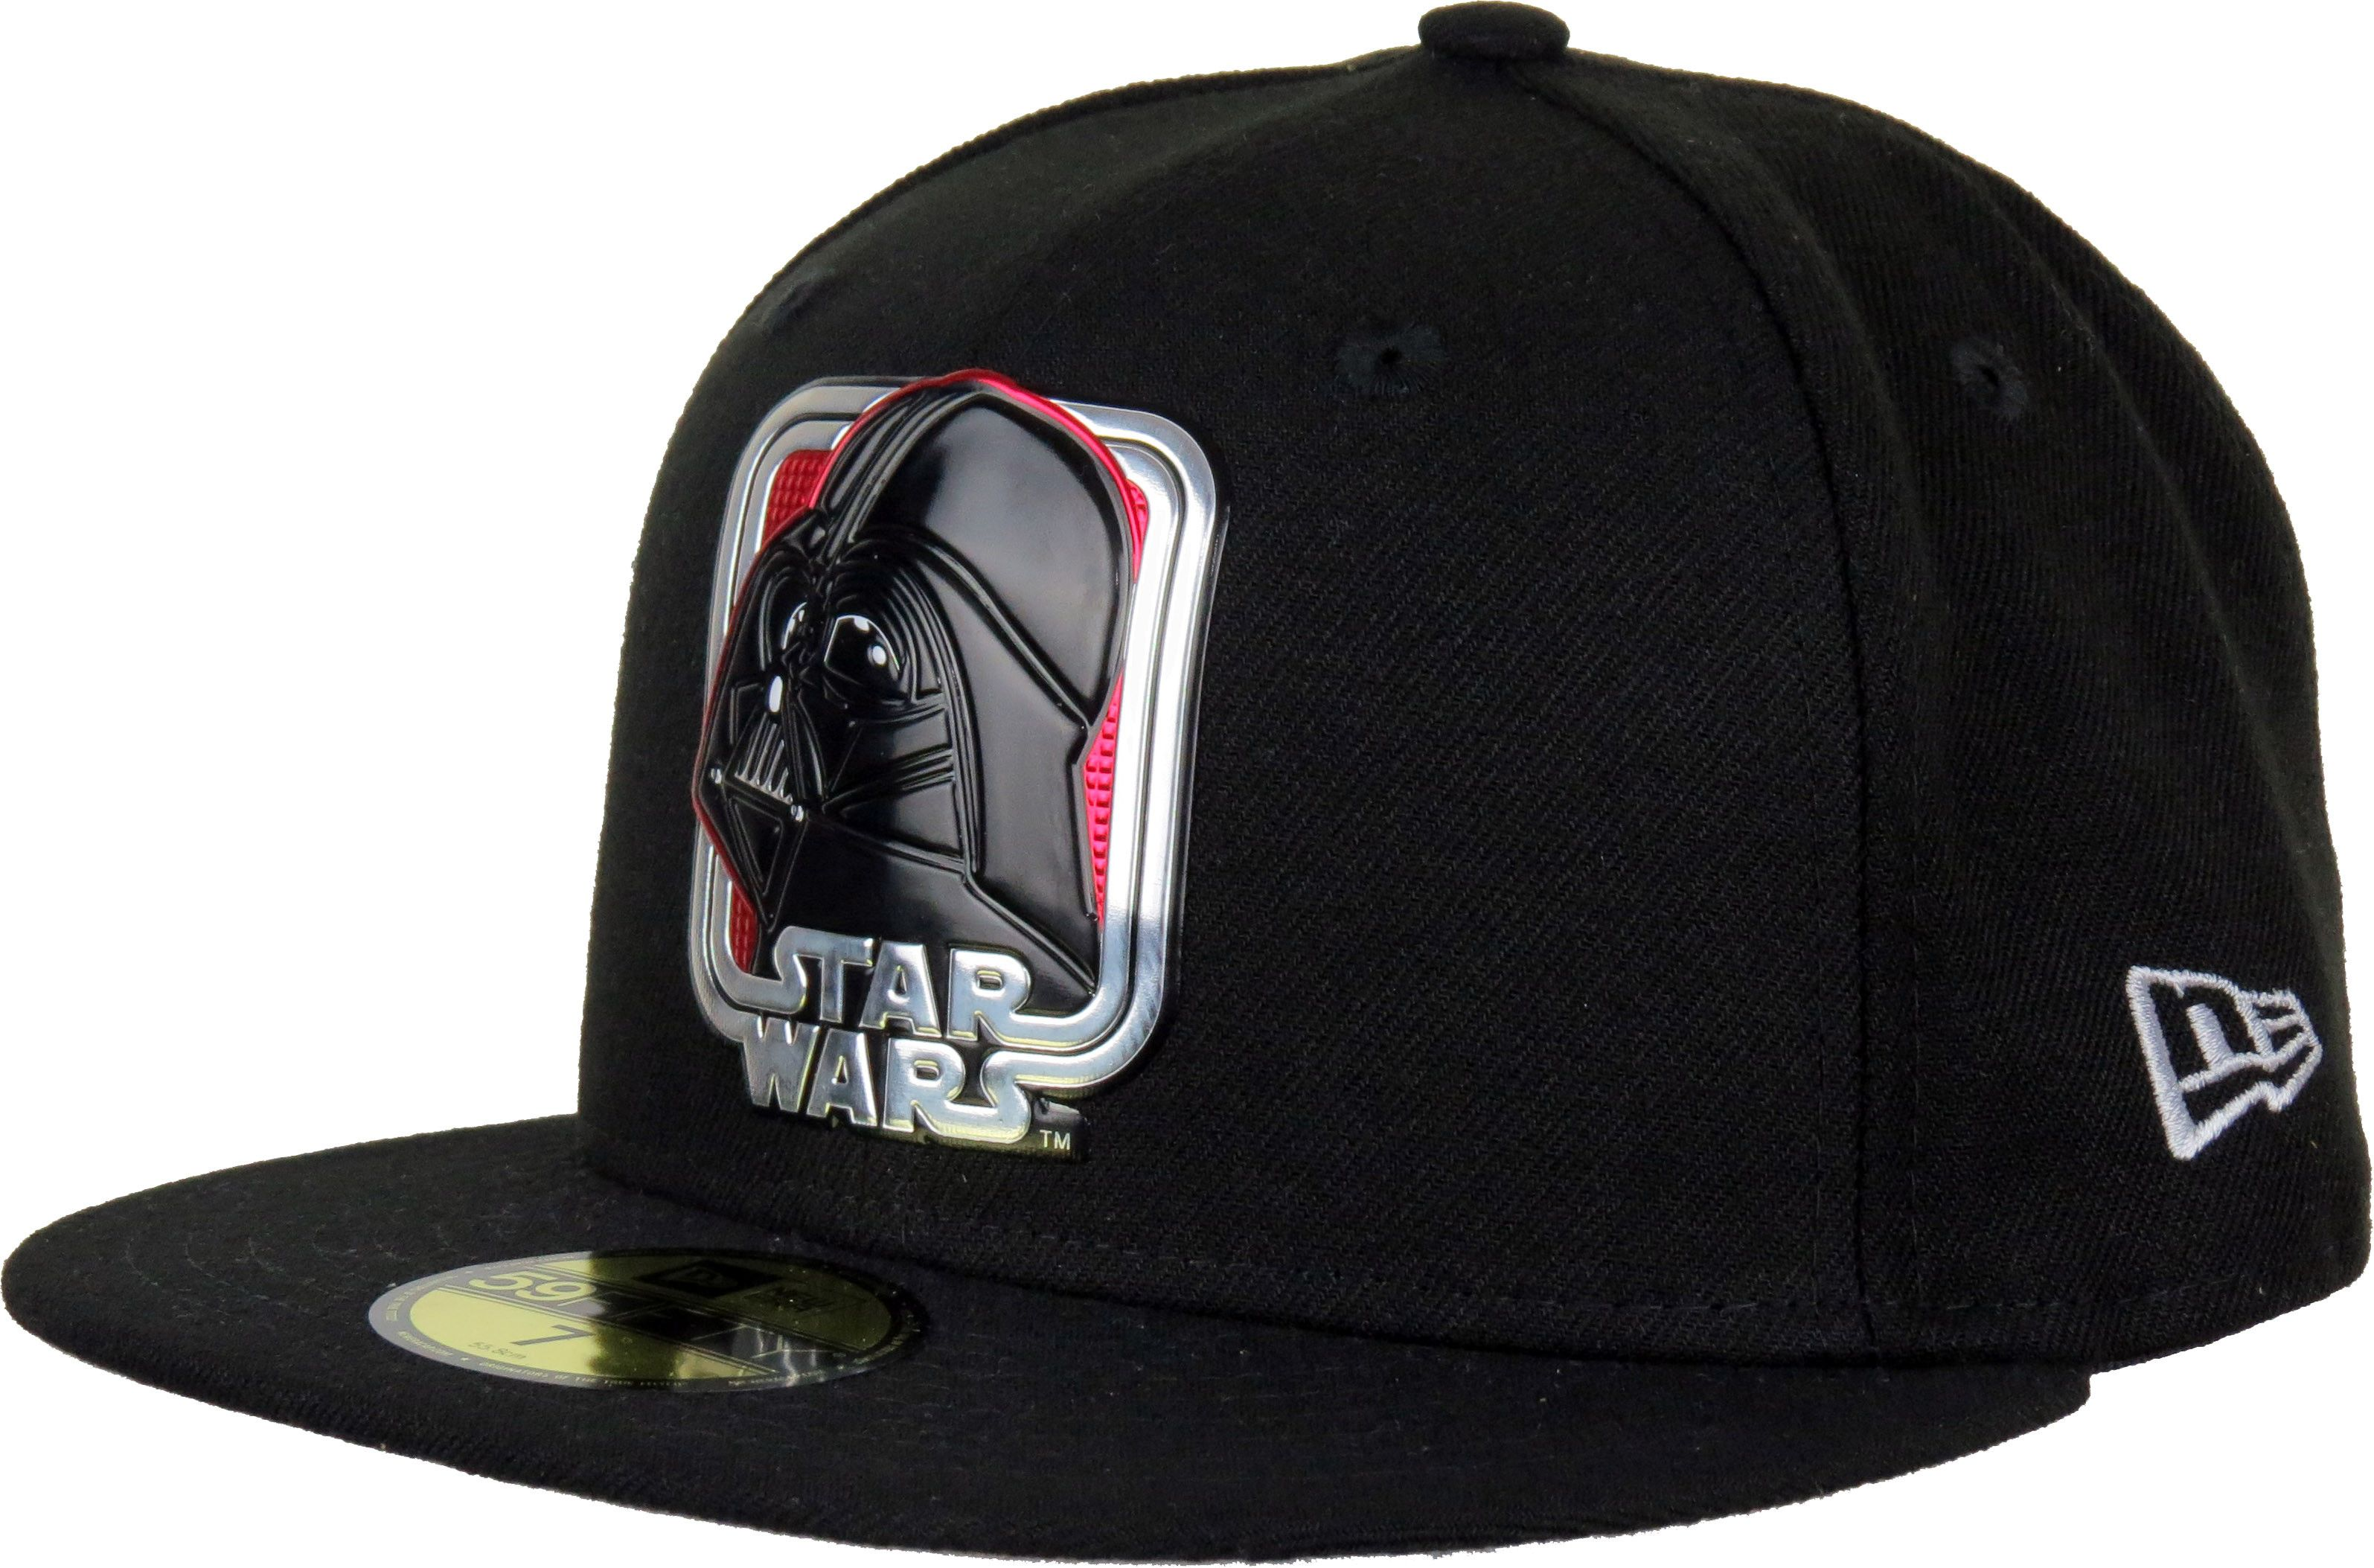 6a06614cc0c New Era 59Fifty Star Wars 40th Anniversary Fitted Black Cap. Black with the  Darth Vader